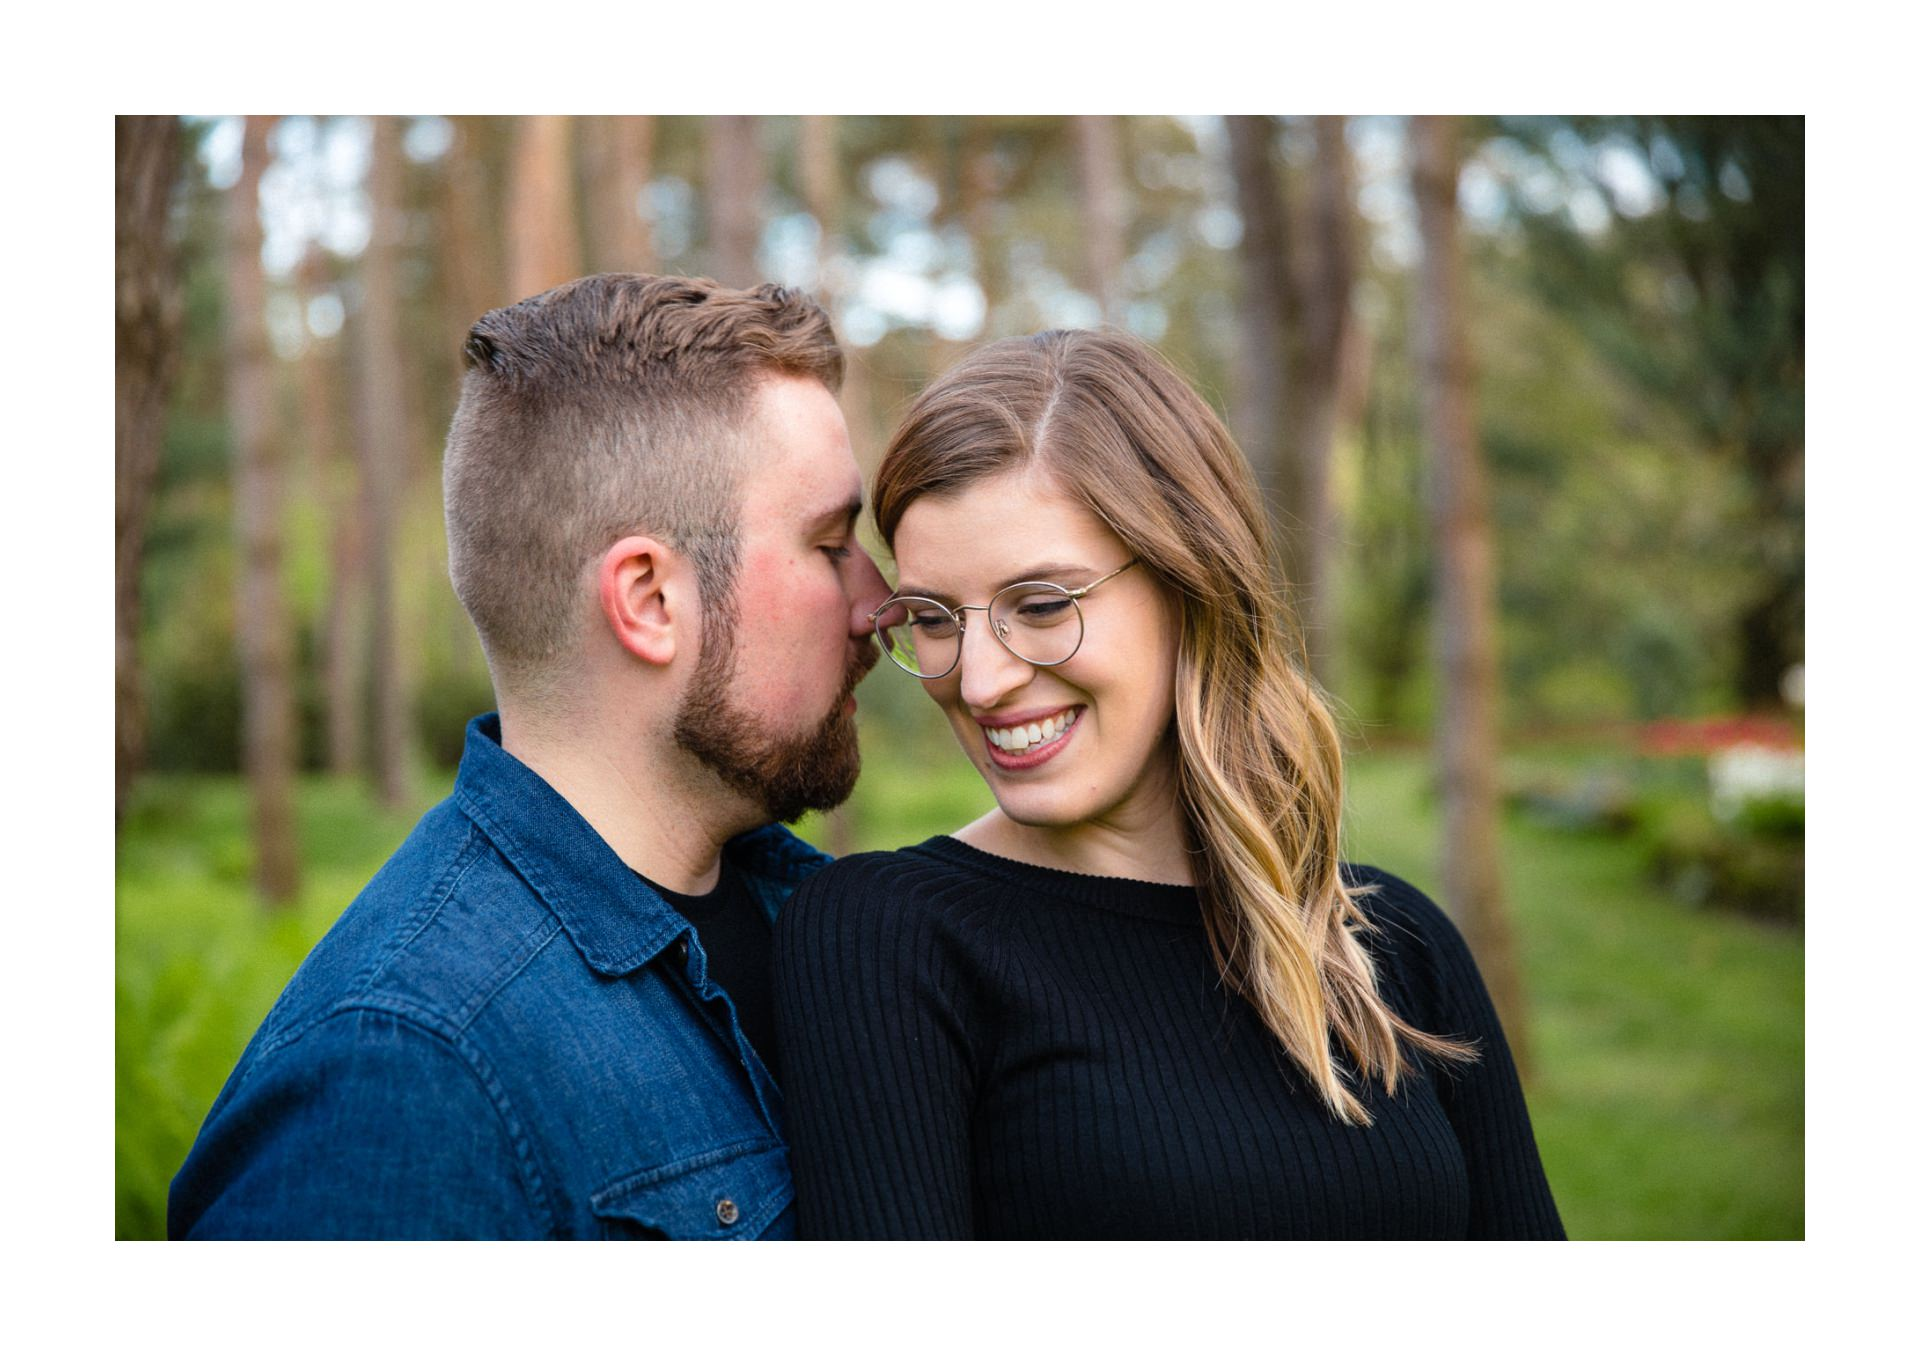 Spring Cleveland Botanical Gardens Engagement Photos 15.jpg